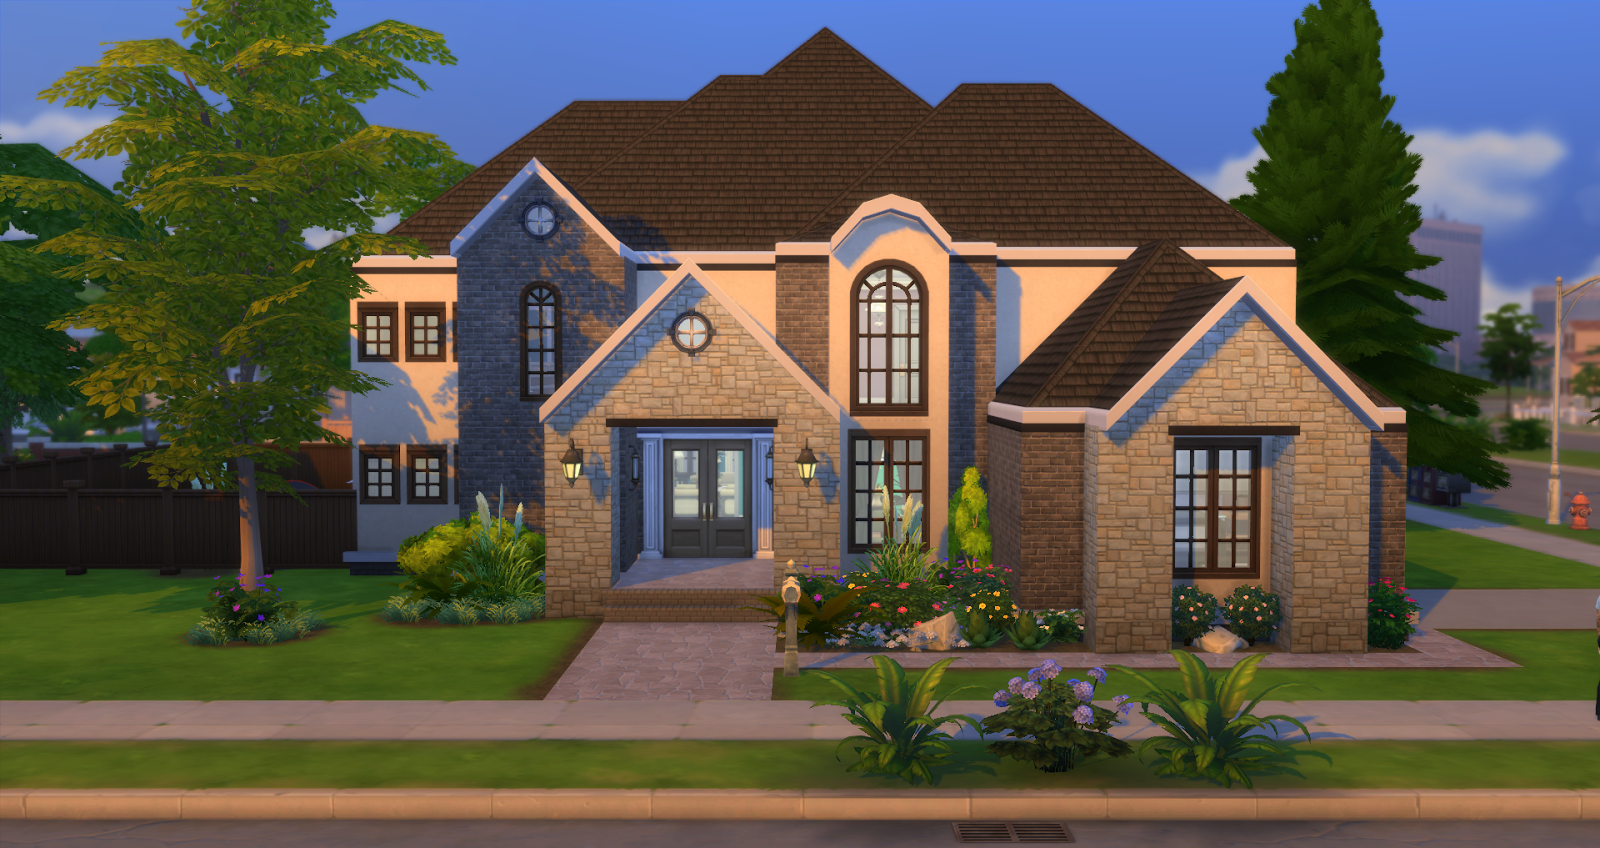 Lacey loves sims suburban elegance for Family homes com